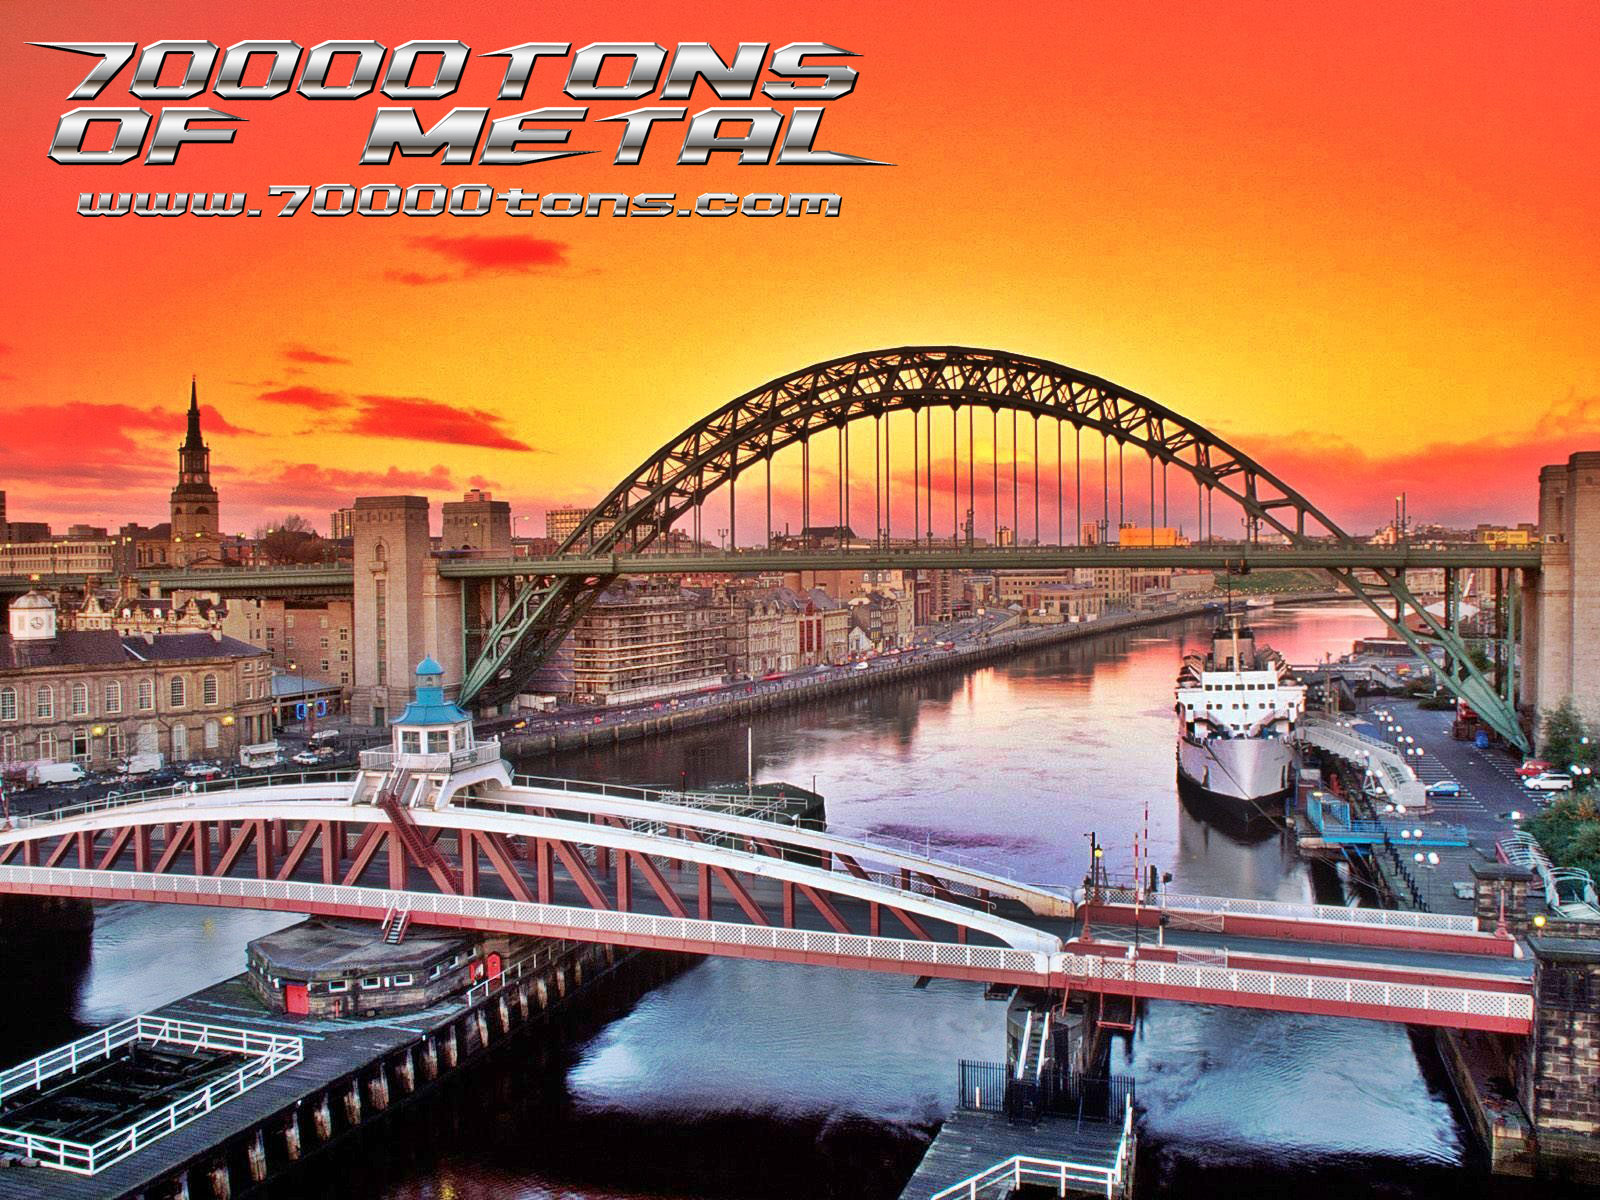 Newcastle: The World's Biggest Heavy Metal Cruise